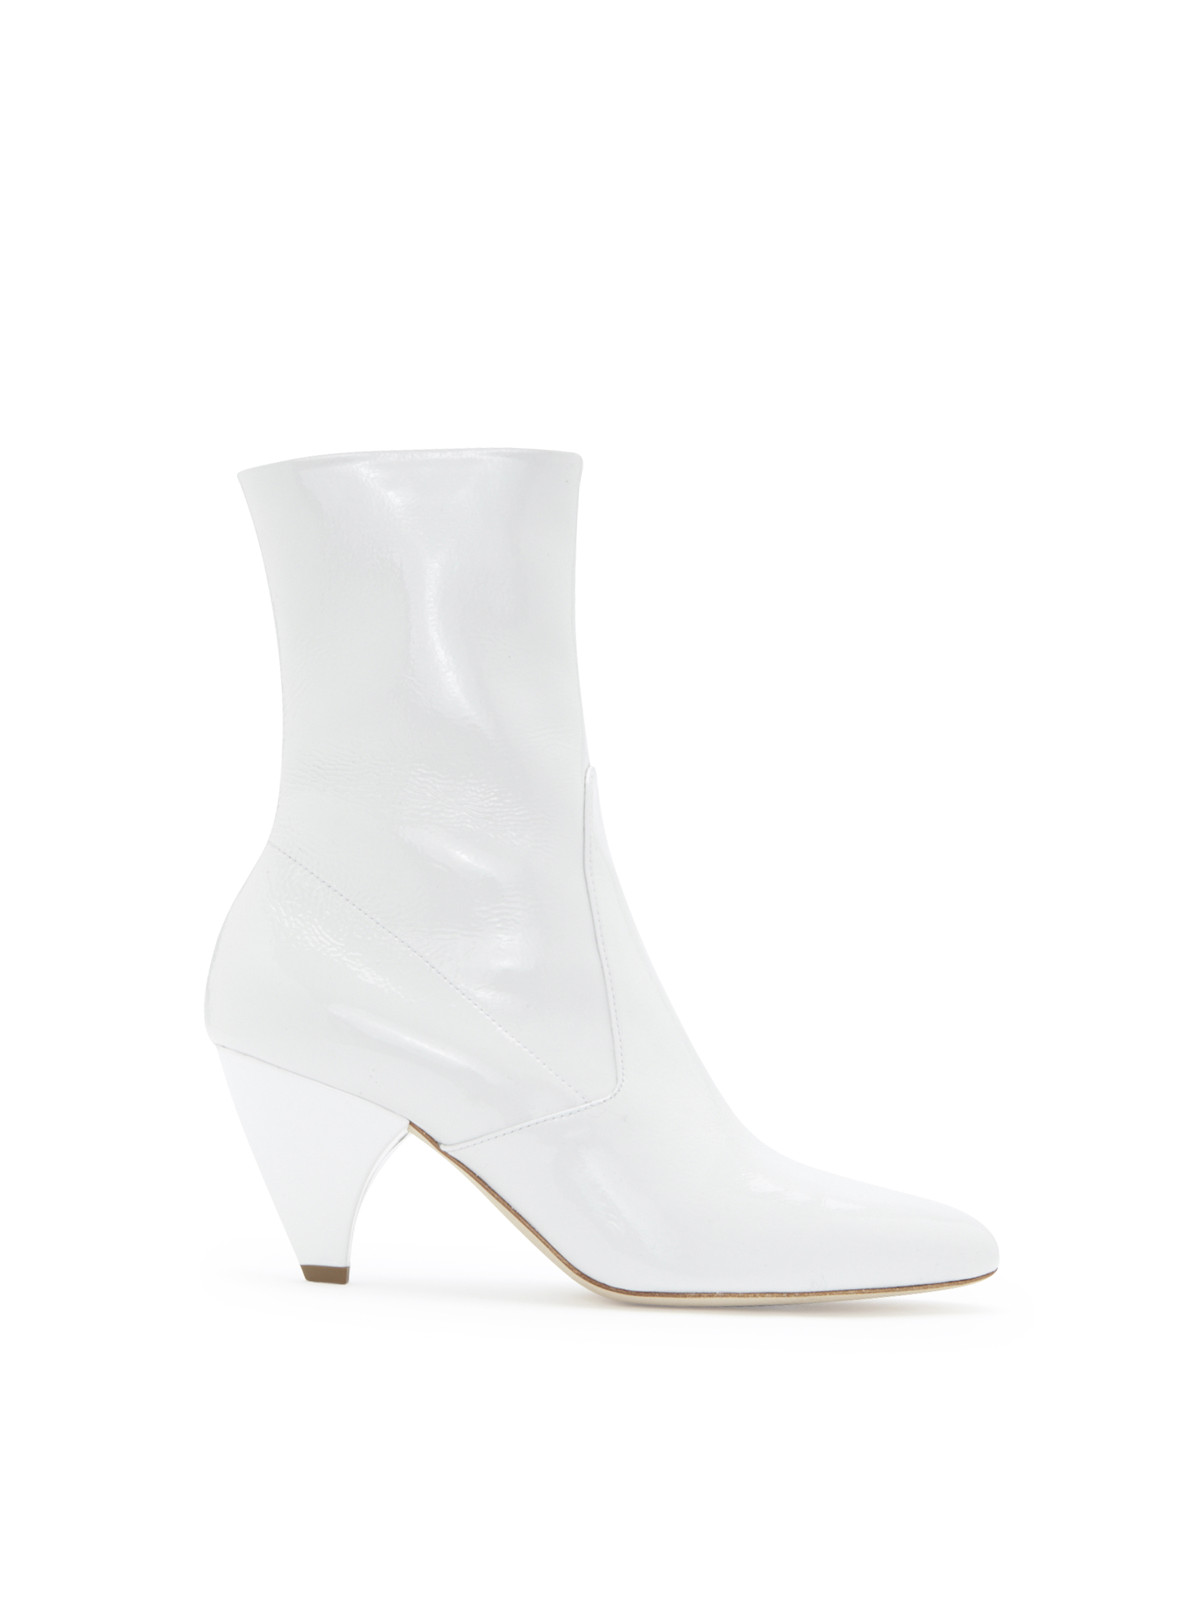 52LDFW19_Venus_Stretch Patent Calf_White_7983.jpg